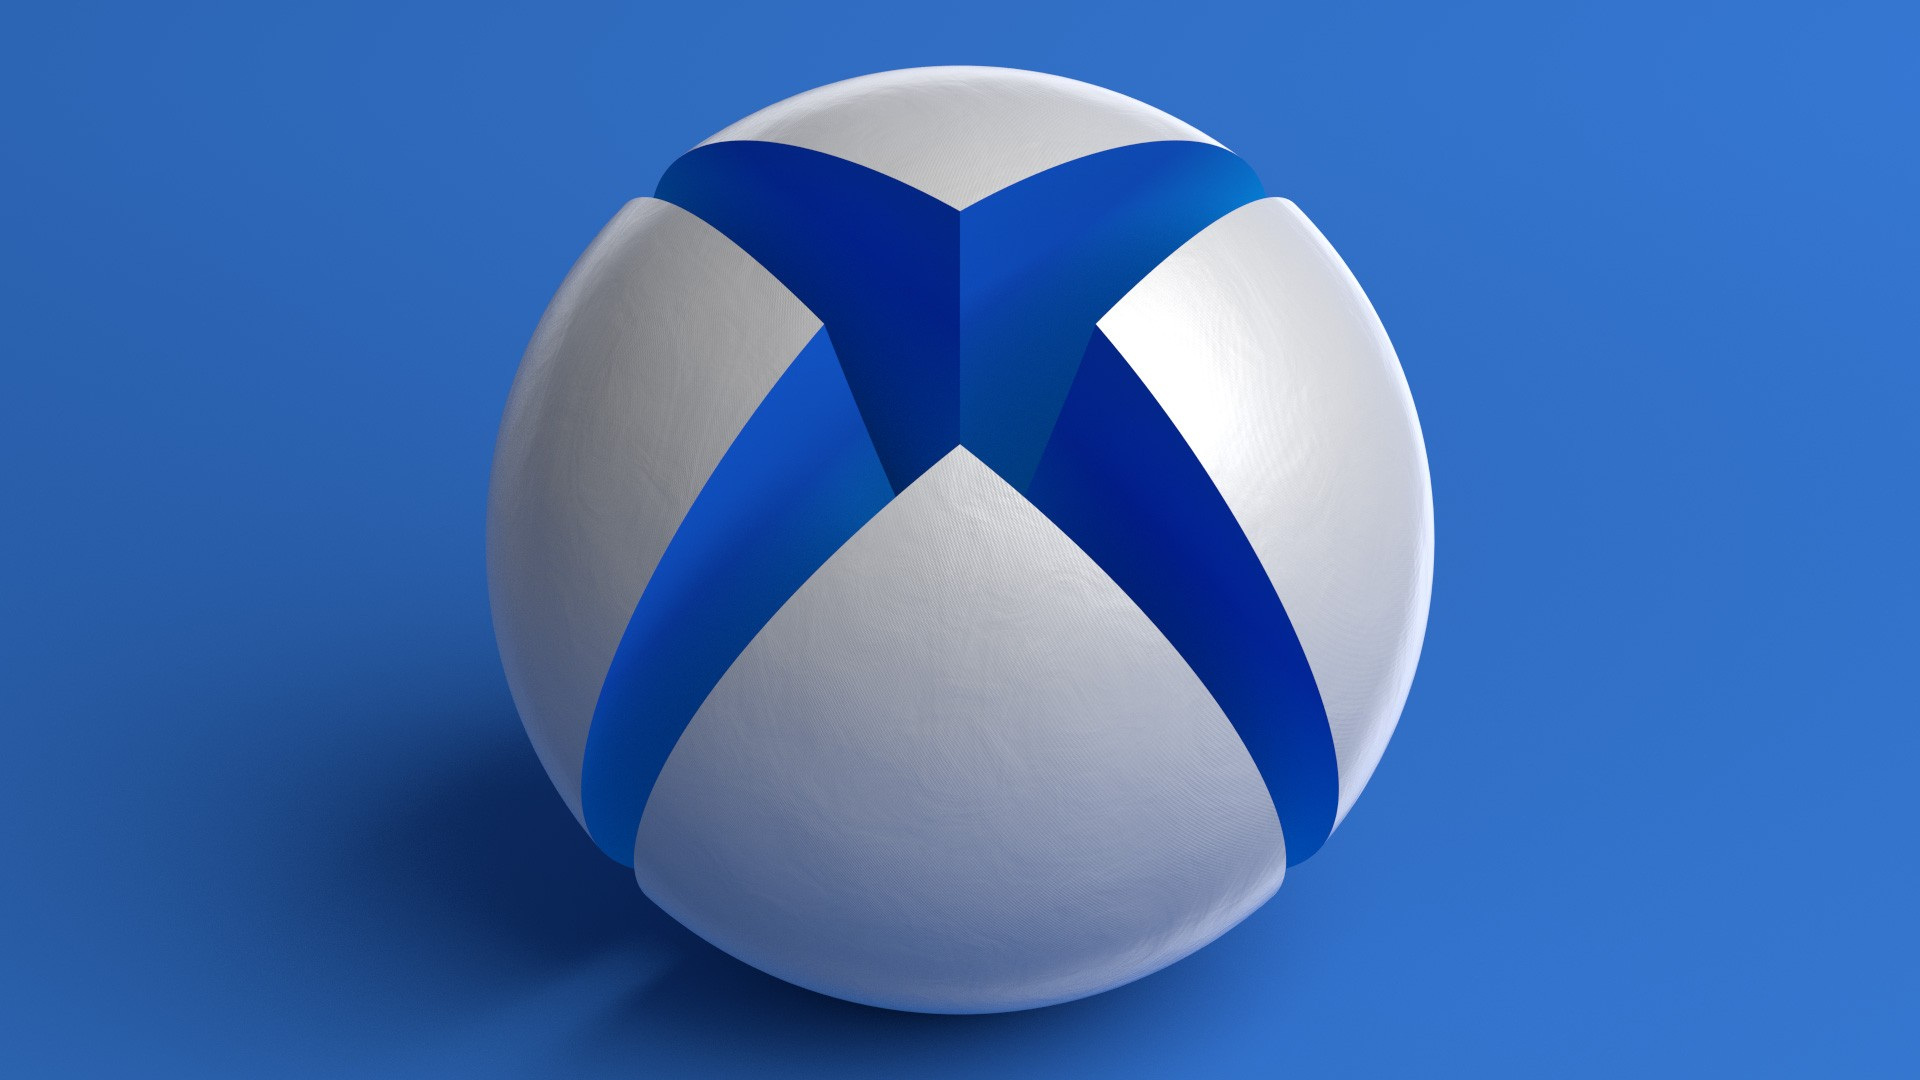 Xbox One Background Download Free Beautiful Hd Backgrounds For